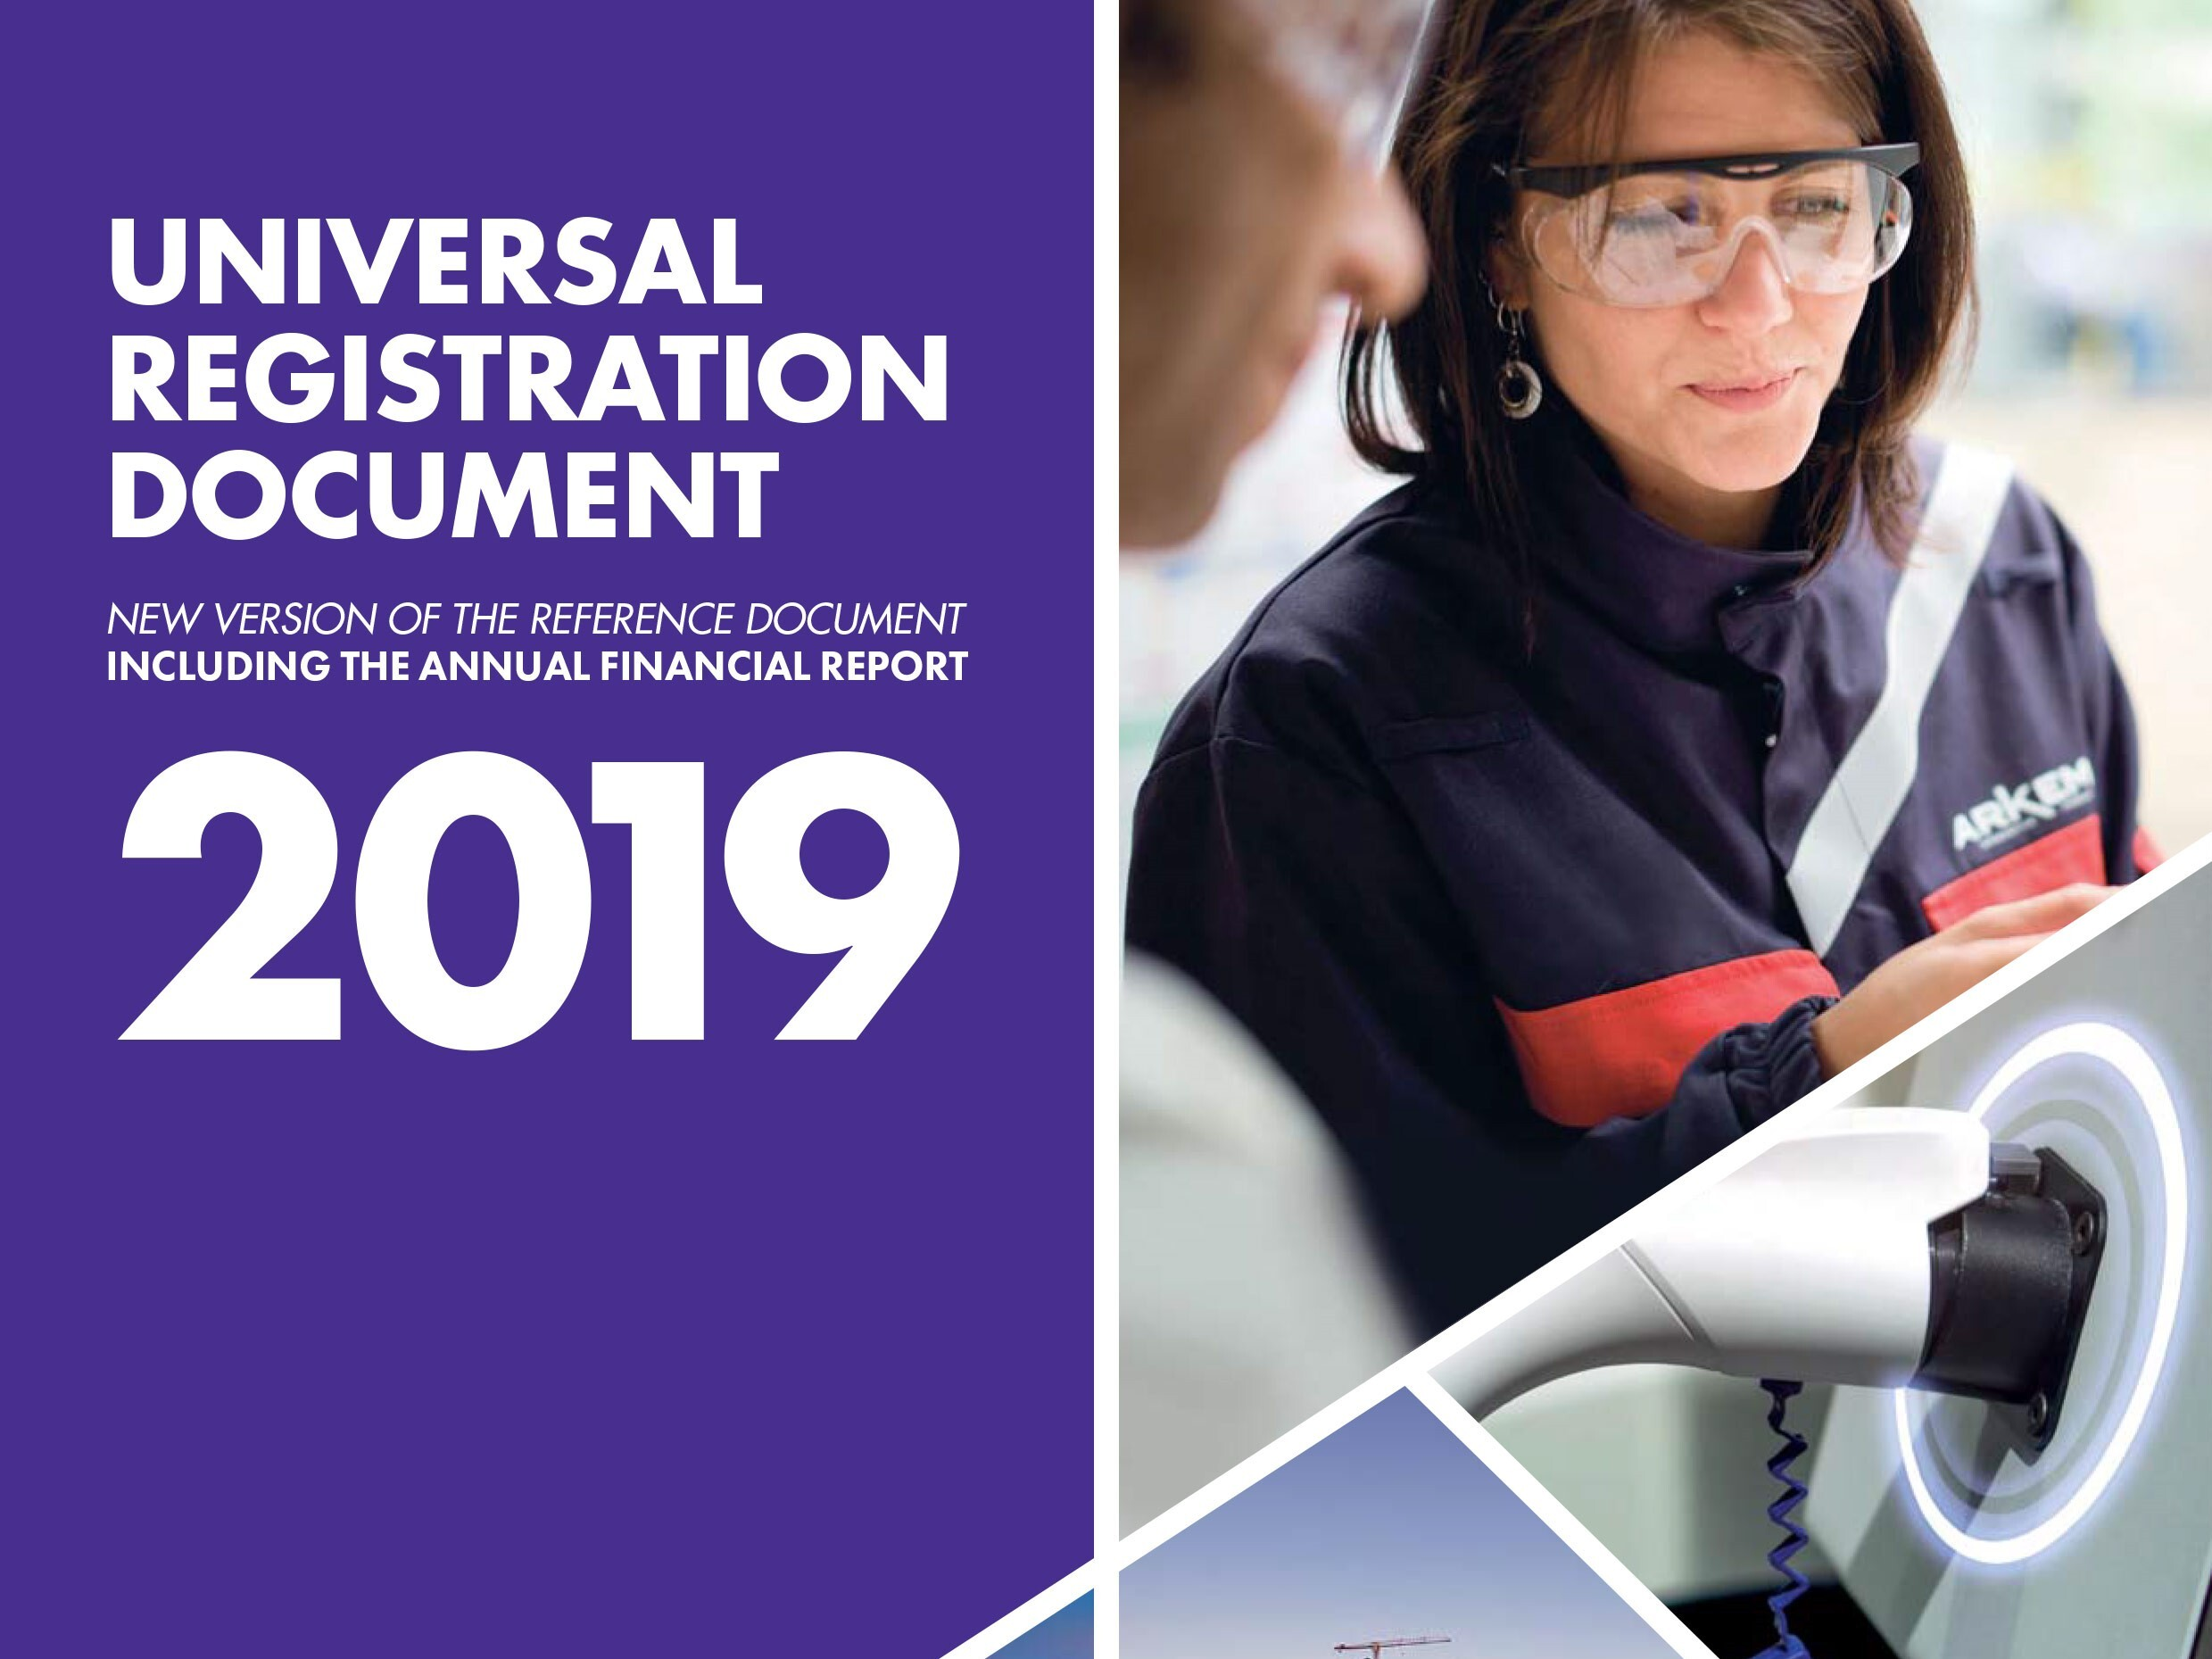 Universal Registration Document